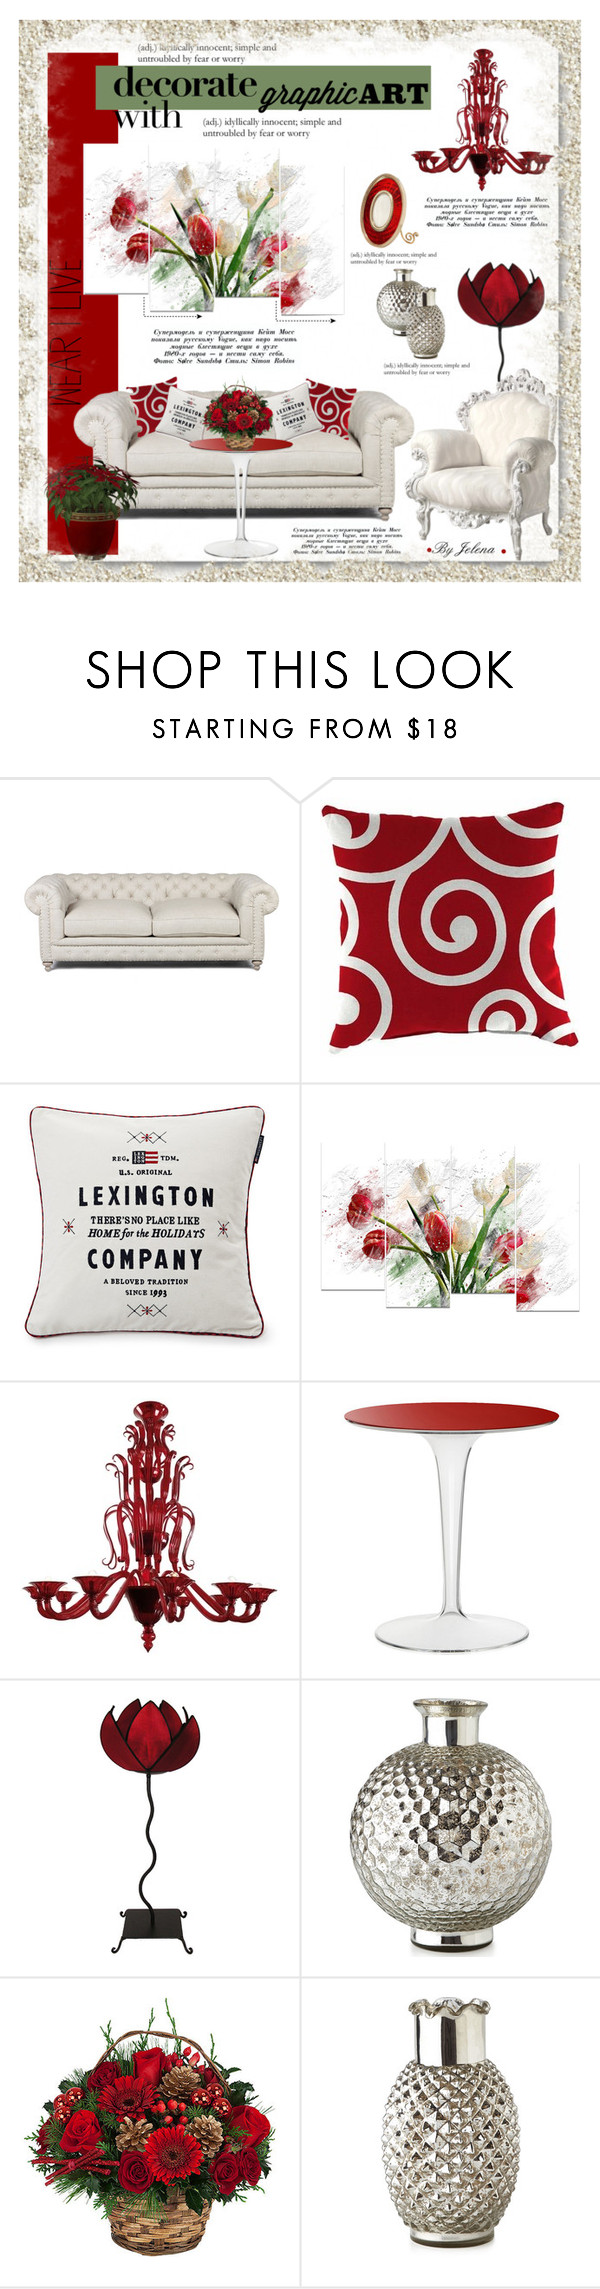 """Decorate With Graphic Art"" by jelenalazarevicpo ❤ liked on Polyvore featuring interior, interiors, interior design, home, home decor, interior decorating, Jordan Manufacturing, Lexington, Venini and Kartell"